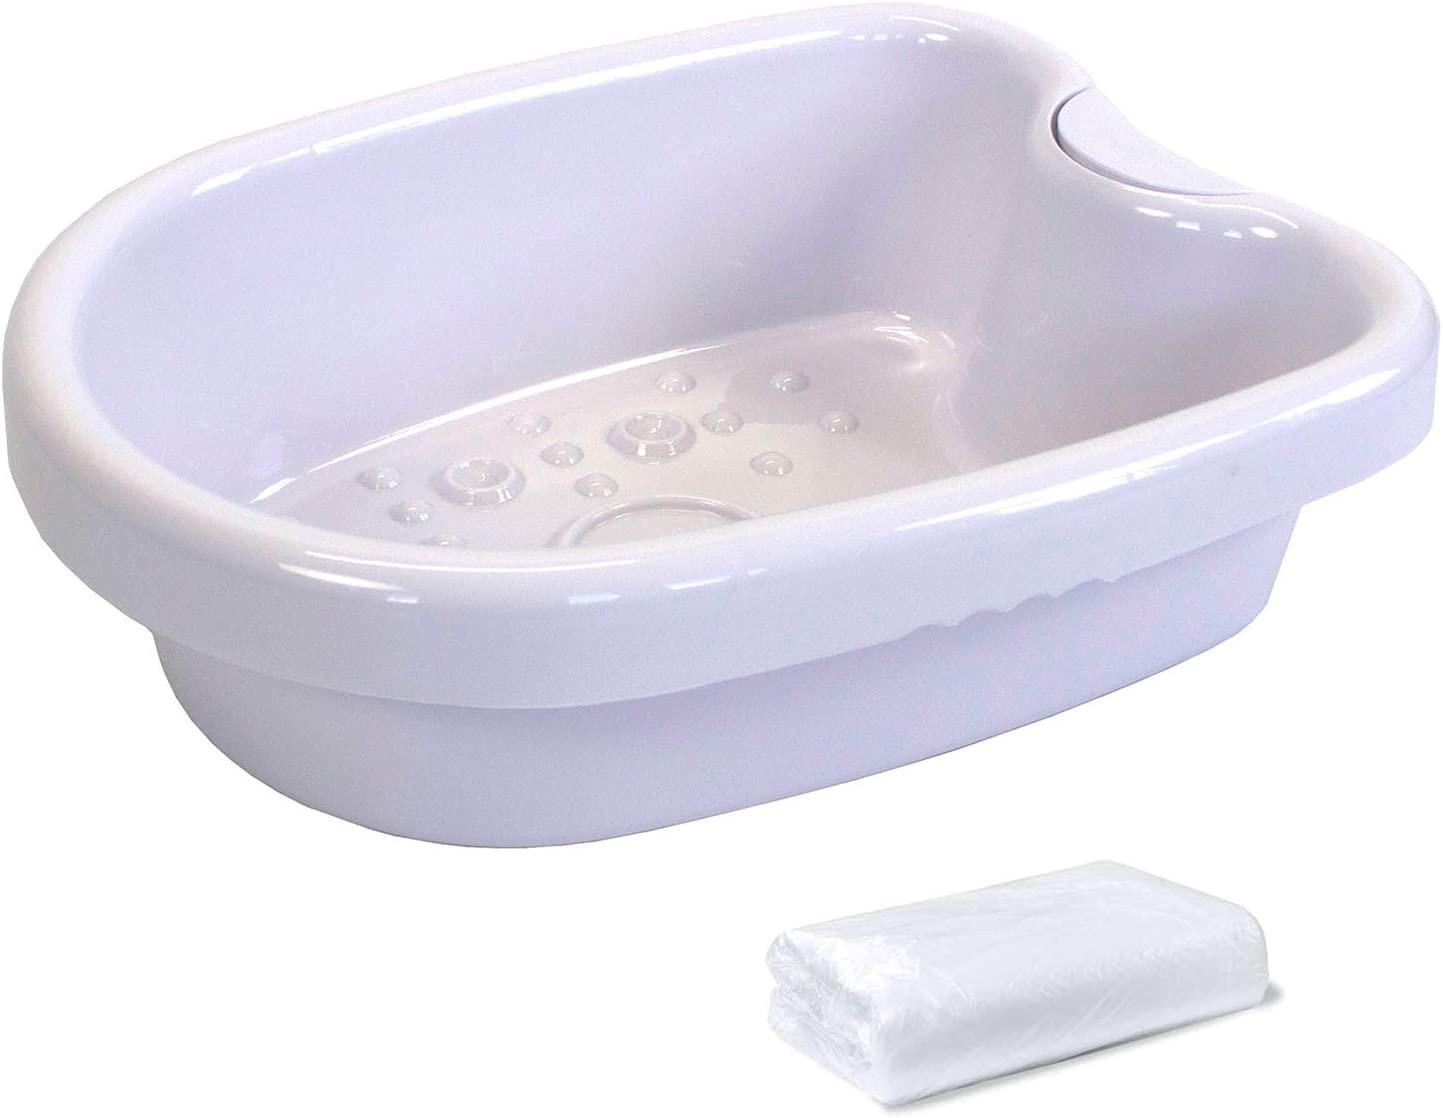 Ionic Foot Bath Tub Basinfor Ionic Detox Machine, Foot Bath Spa Water Spa and Foot Massage Tube for Foot Bath, Soak, or Detoxwith 100 Liners